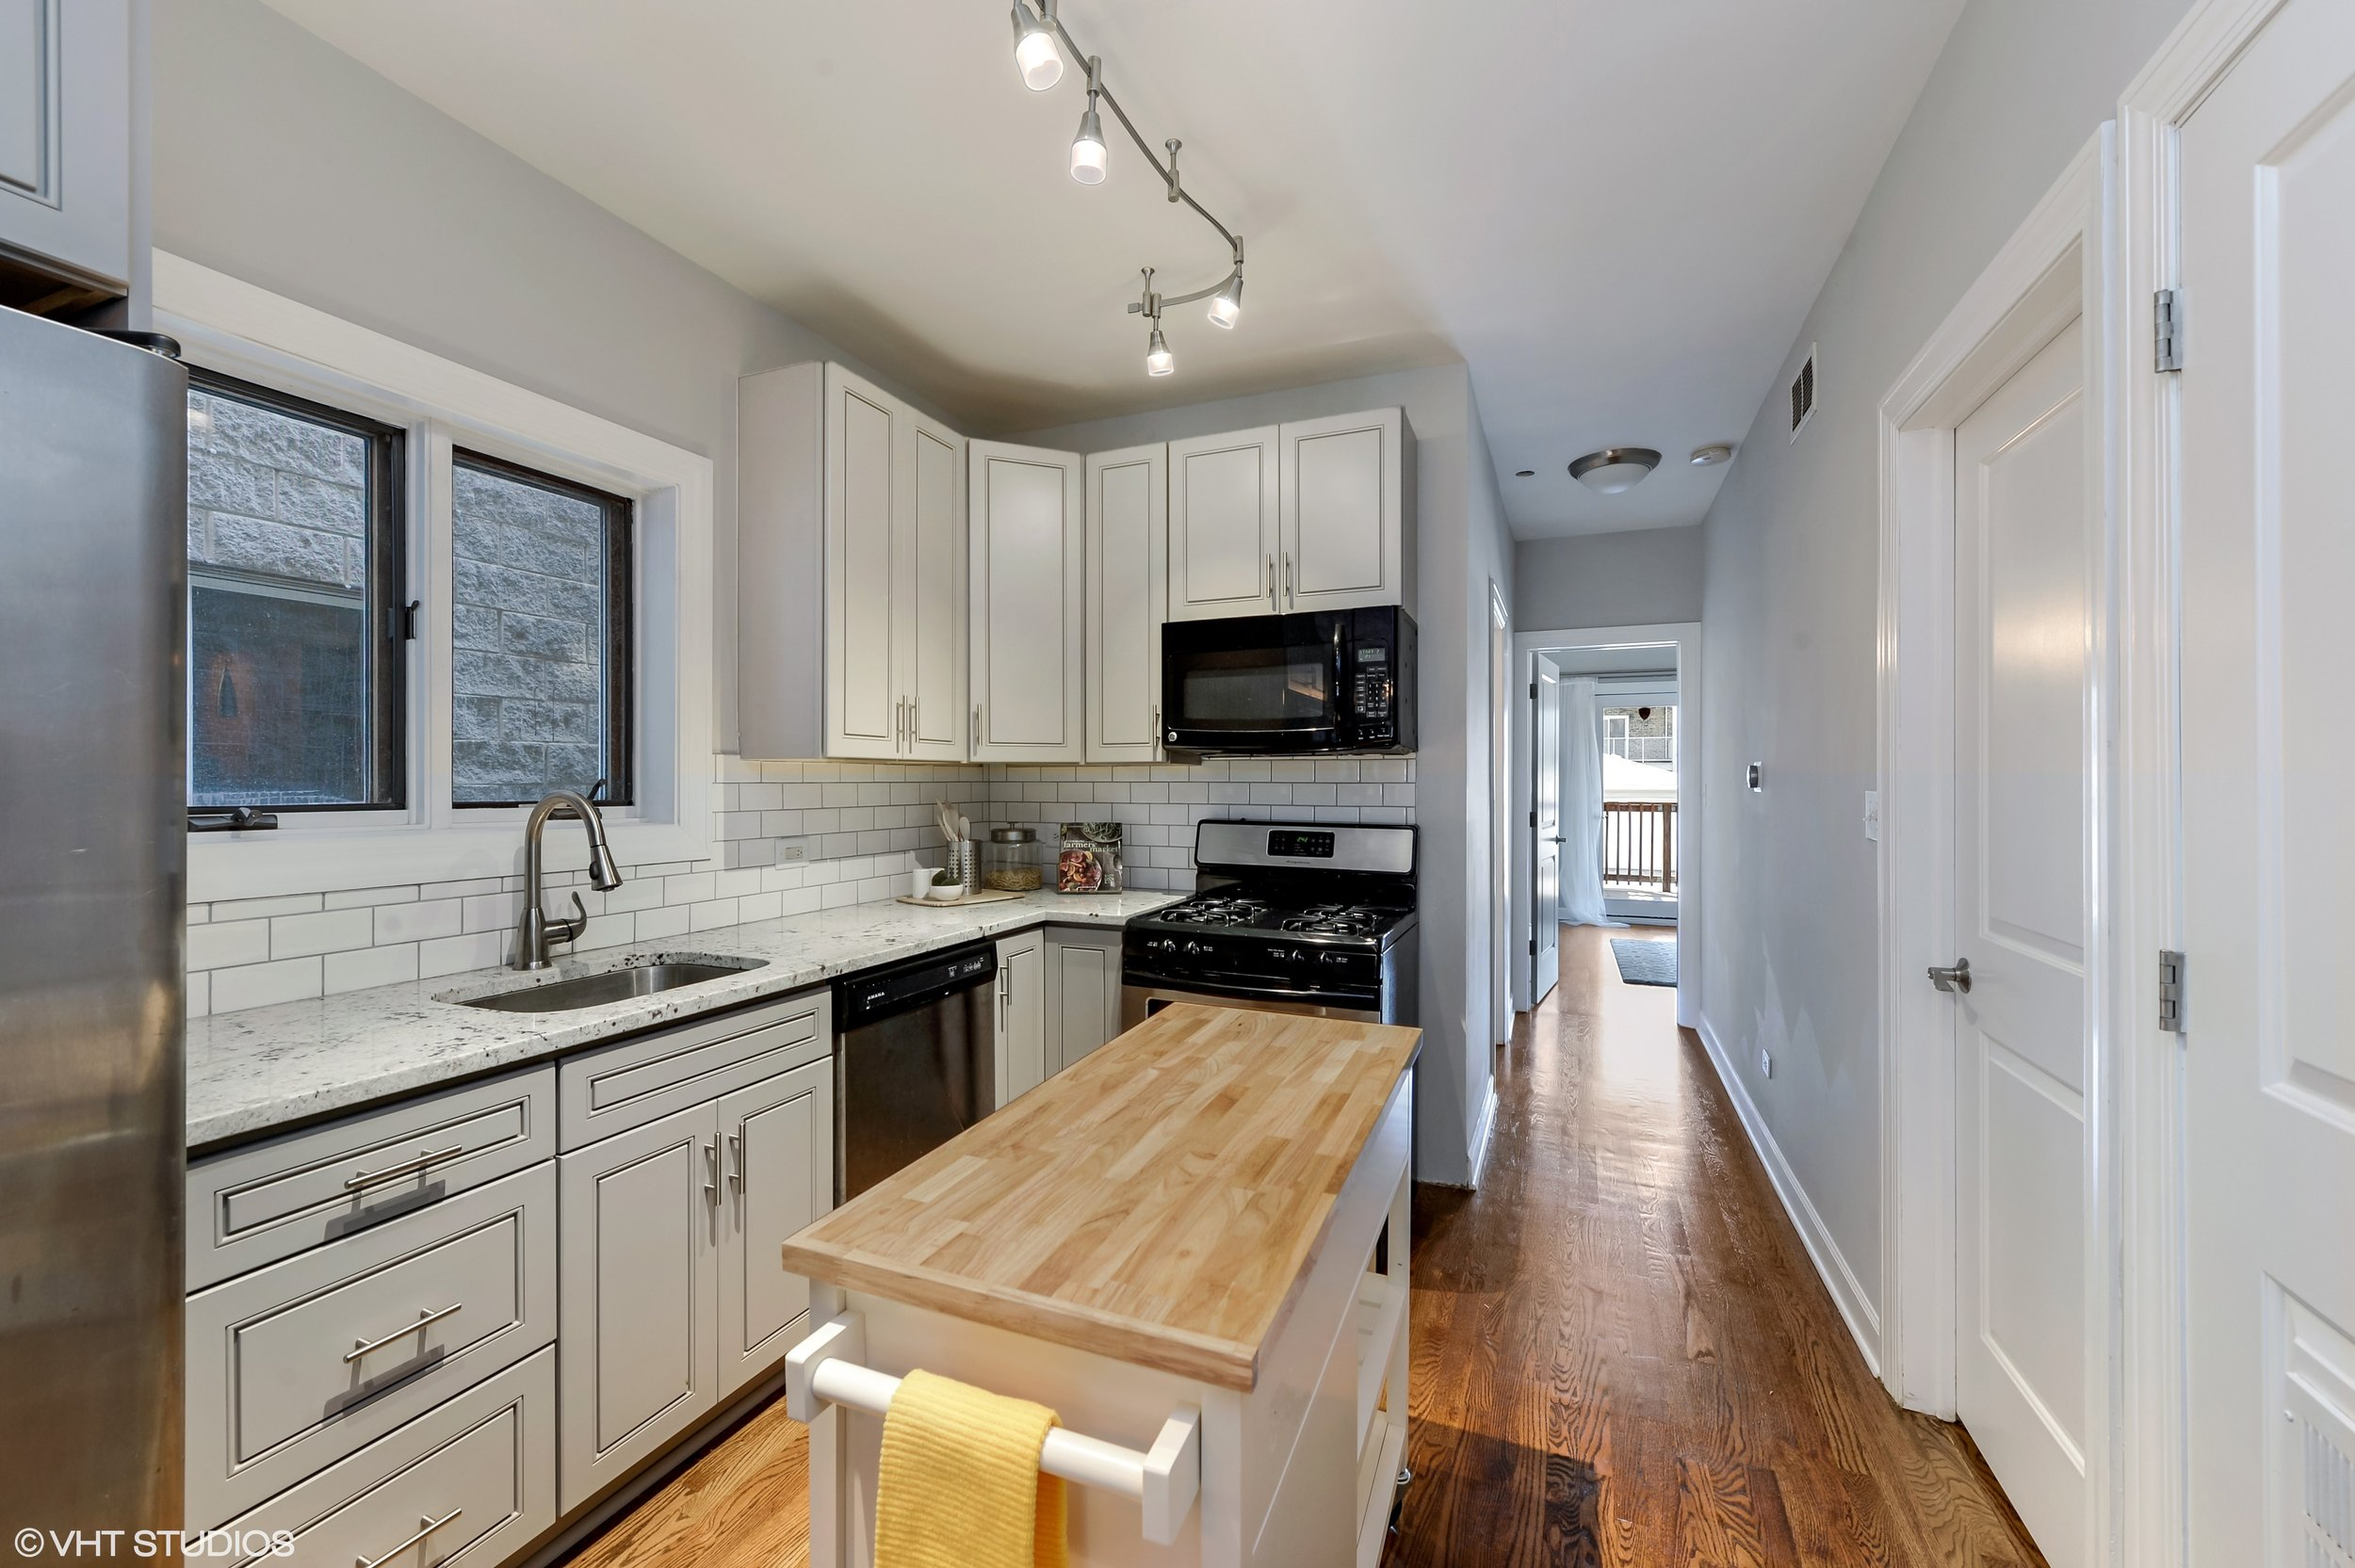 05_942NWoodStreet_Unit1_177_Kitchen_HiRes.jpg